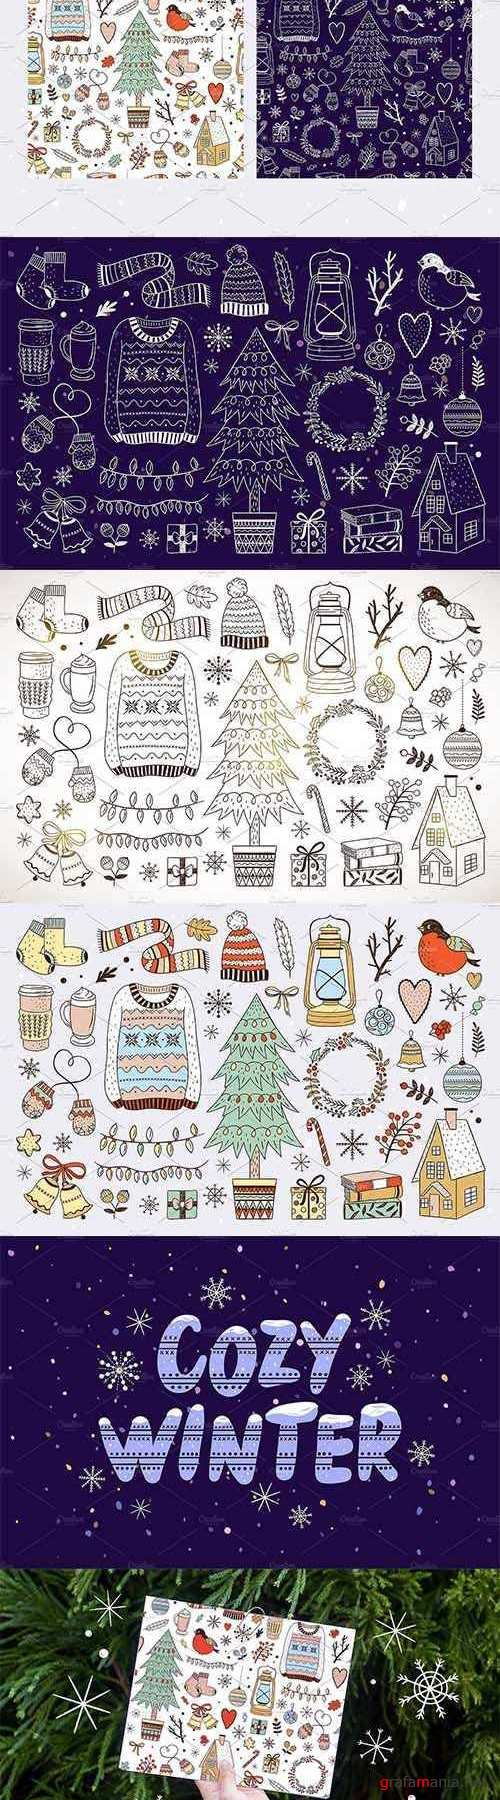 Cozy Winter Illustrations + Patterns - 2008536